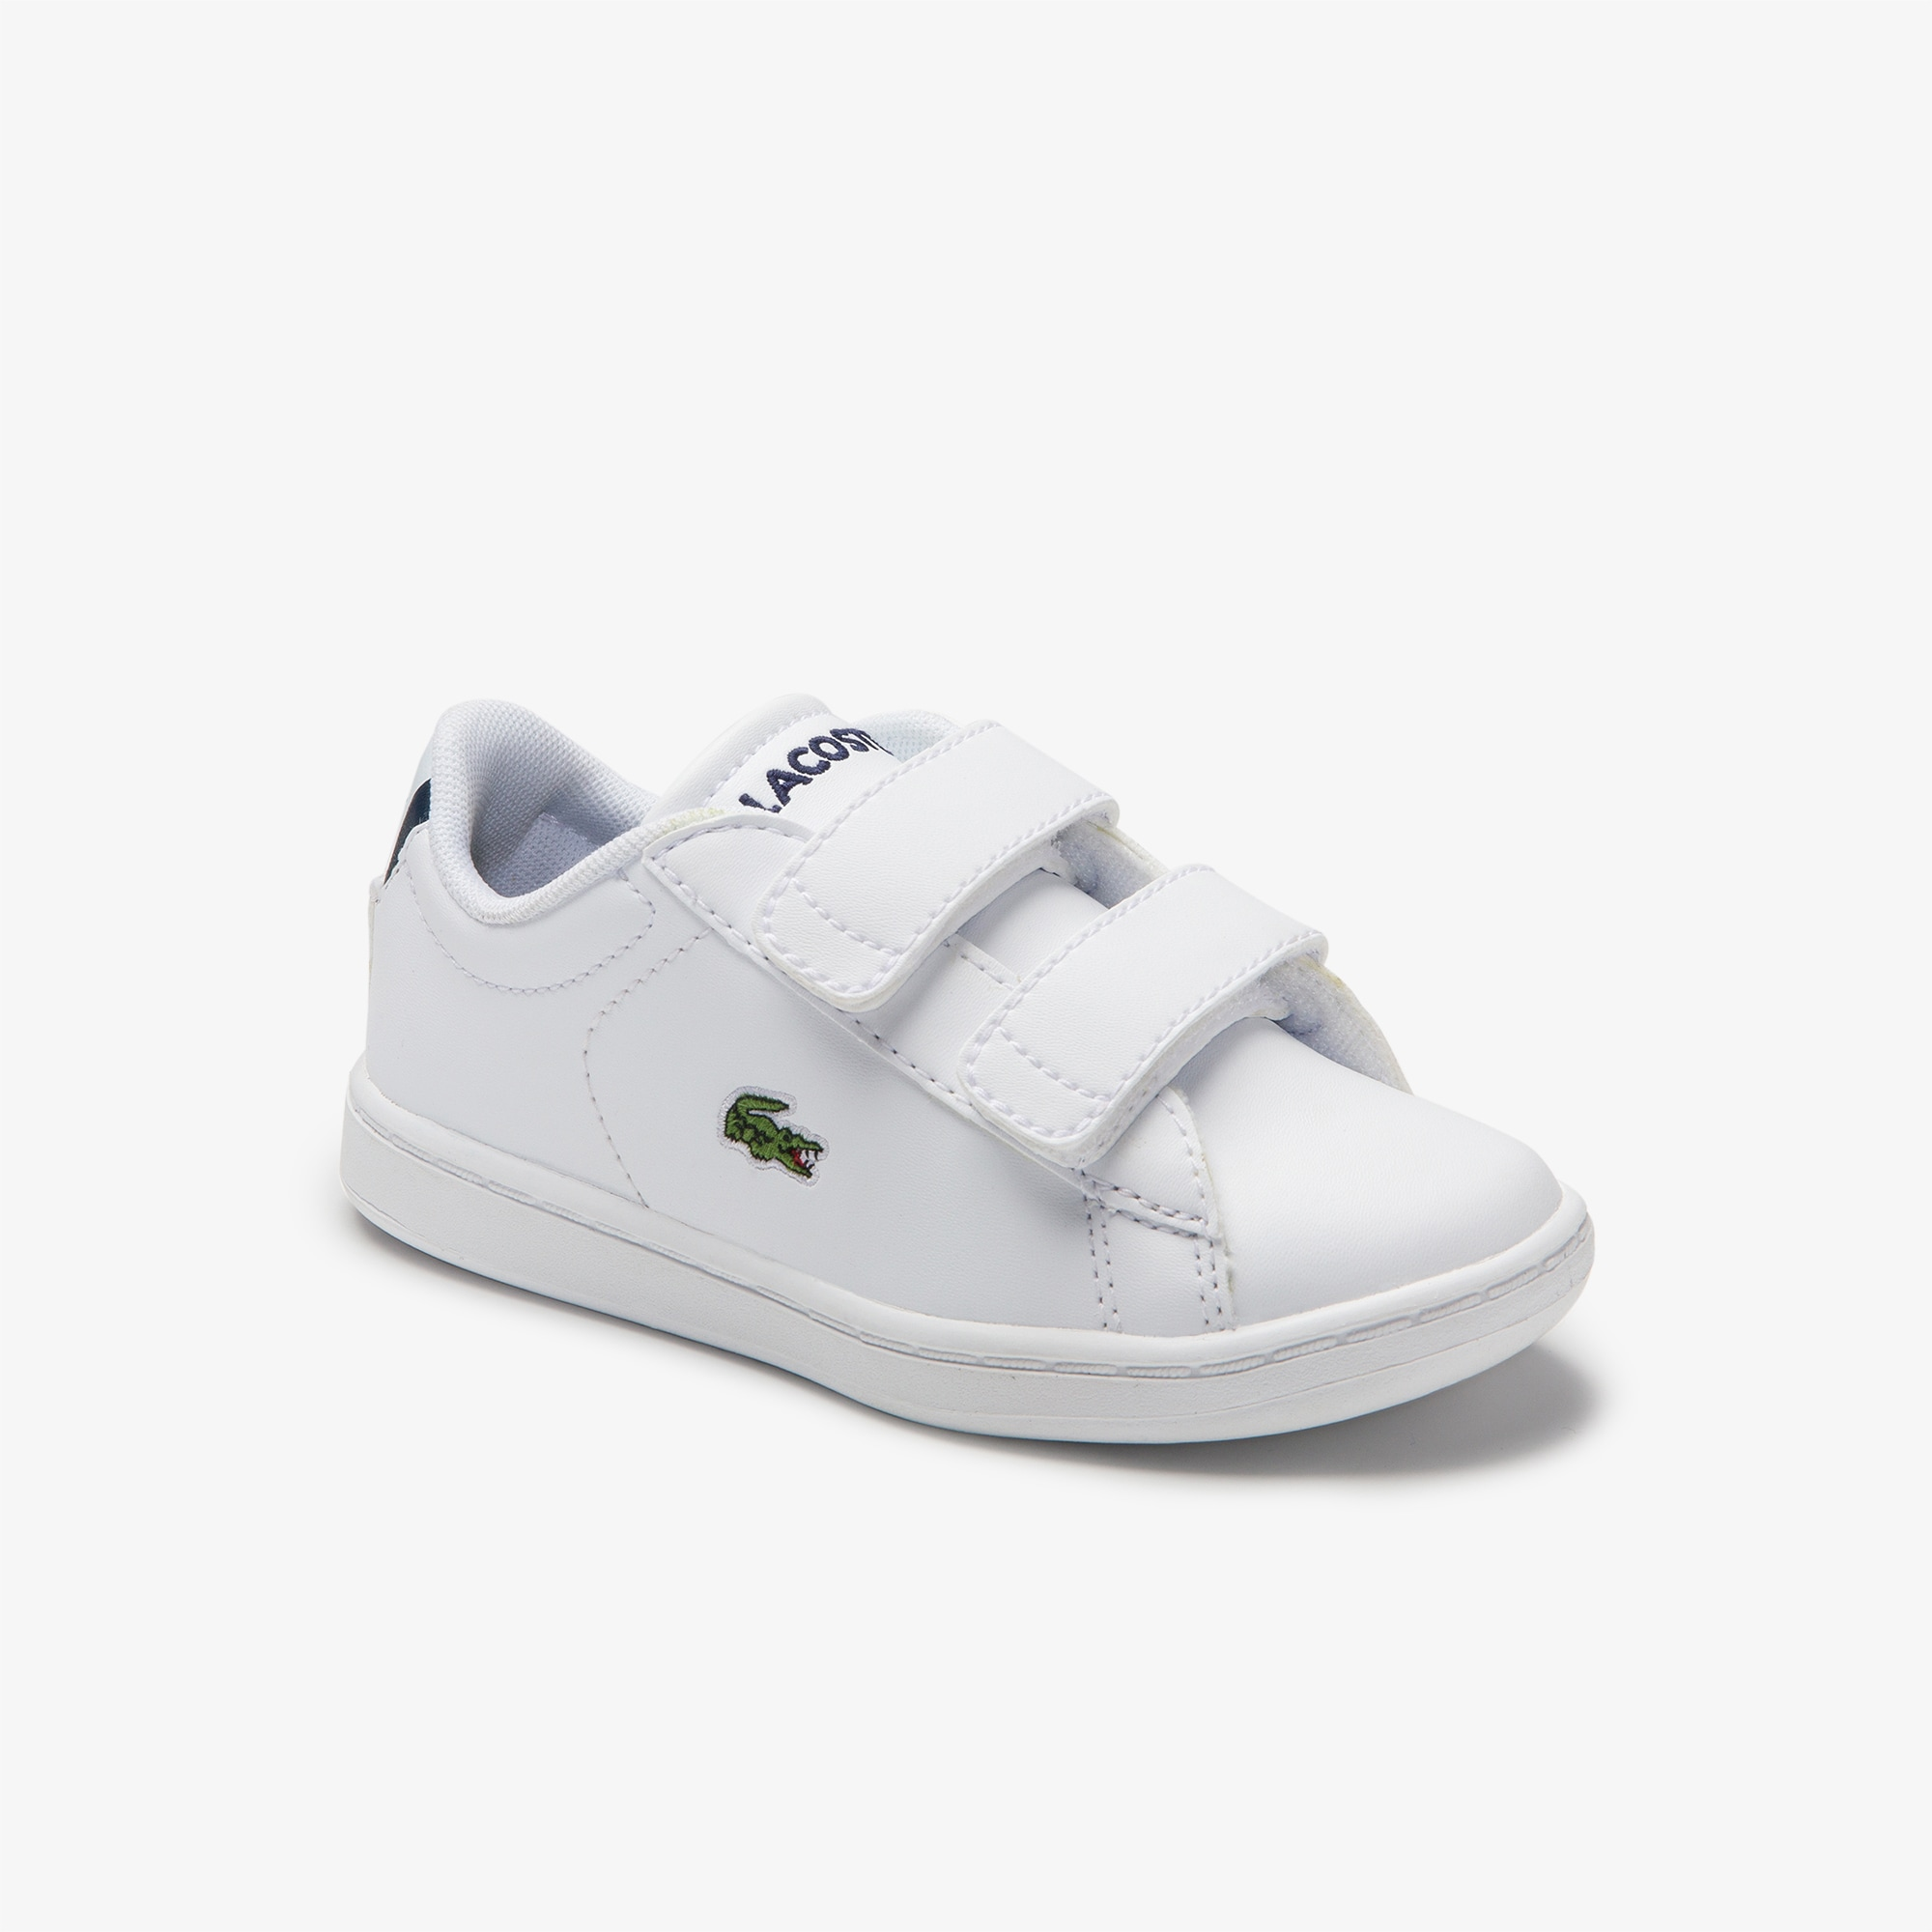 424e871592 Infants' Carnaby Evo BL Synthetic Trainers